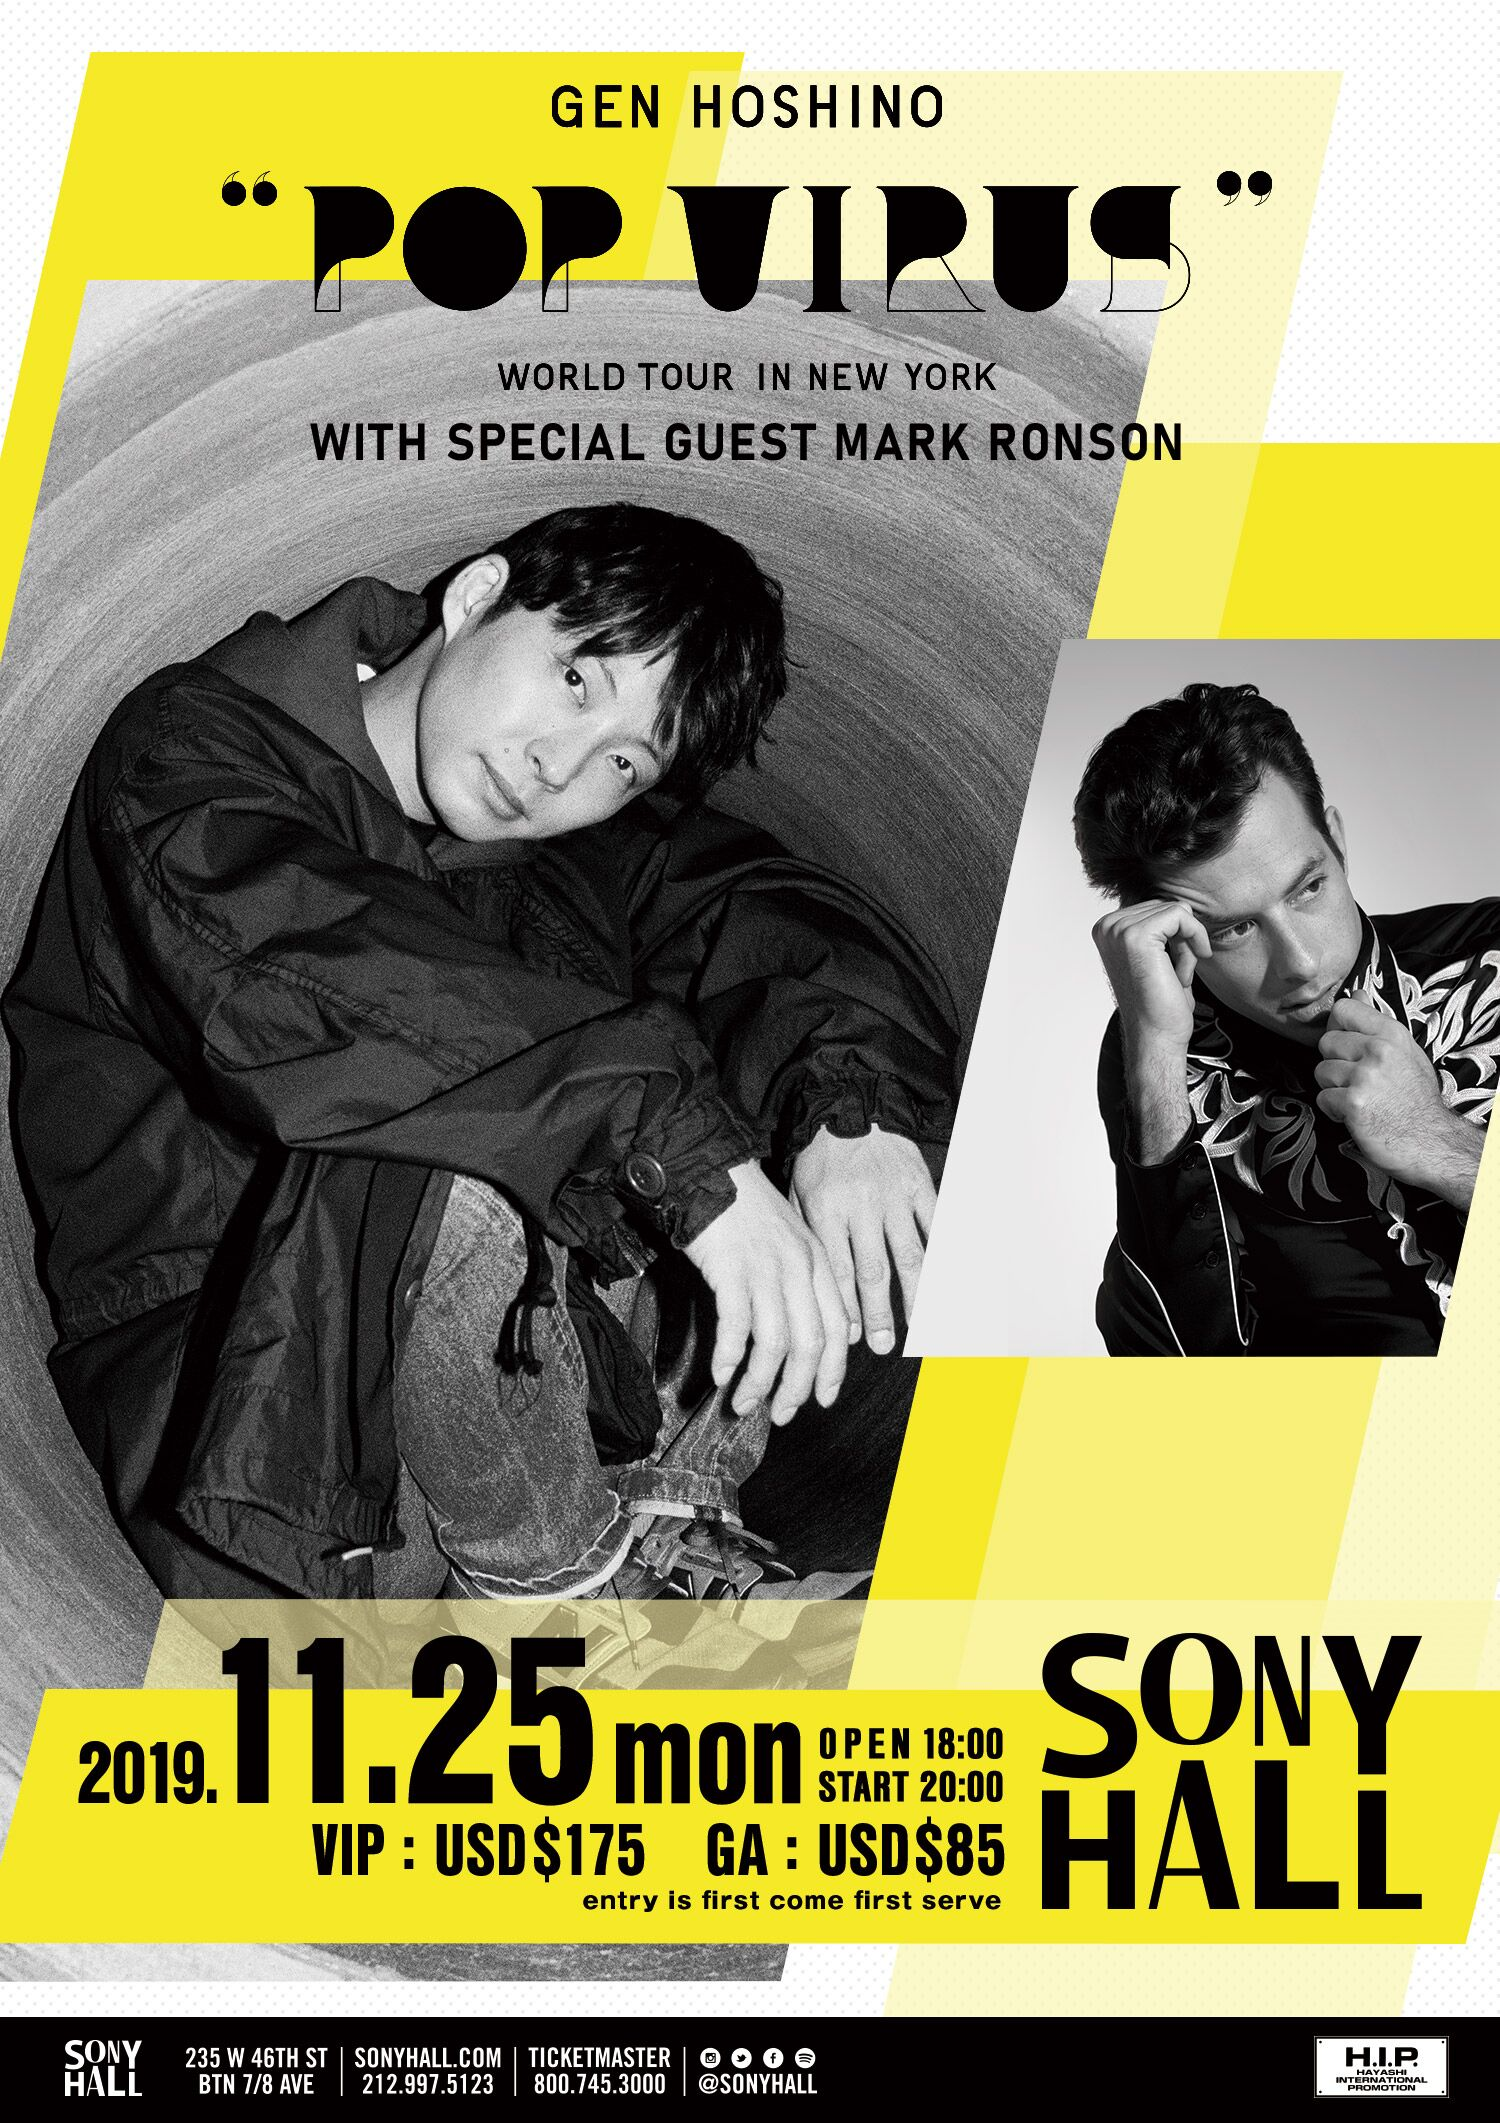 GEN HOSHINO POP VIRUS WORLD TOUR IN NEW YORK WITH SPECIAL GUEST MARK RONSON